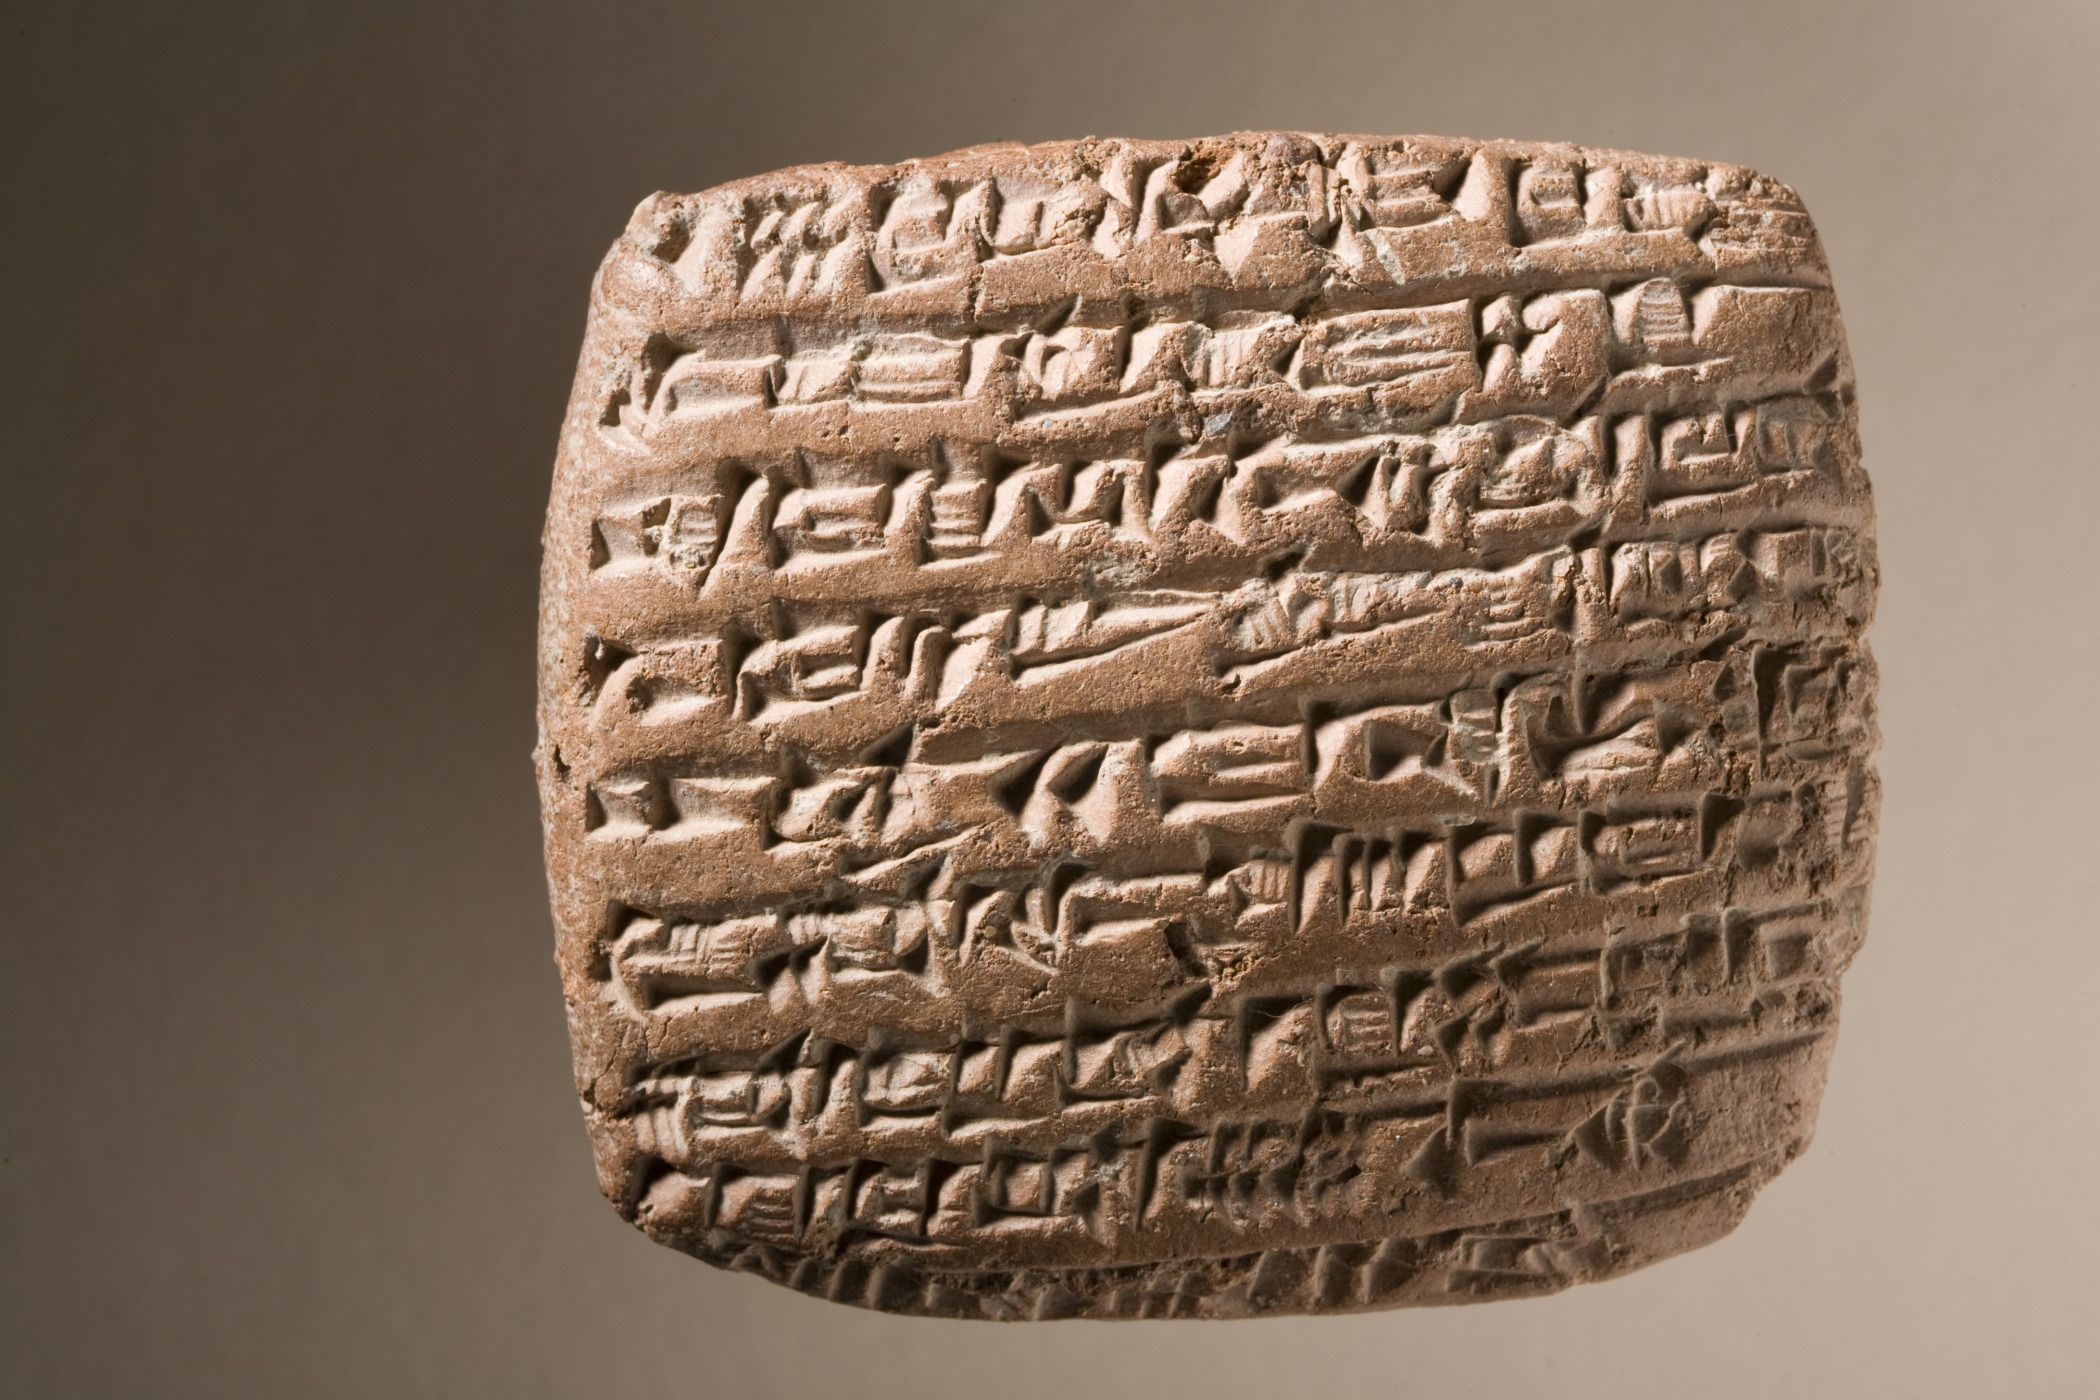 dating cuneiform tablets The hurrian songs are a group of stone tablets with music inscribed in the cuneiform writing system these were unearthed from the ancient amorite city of ugarit and date to approximately 1400 bc.